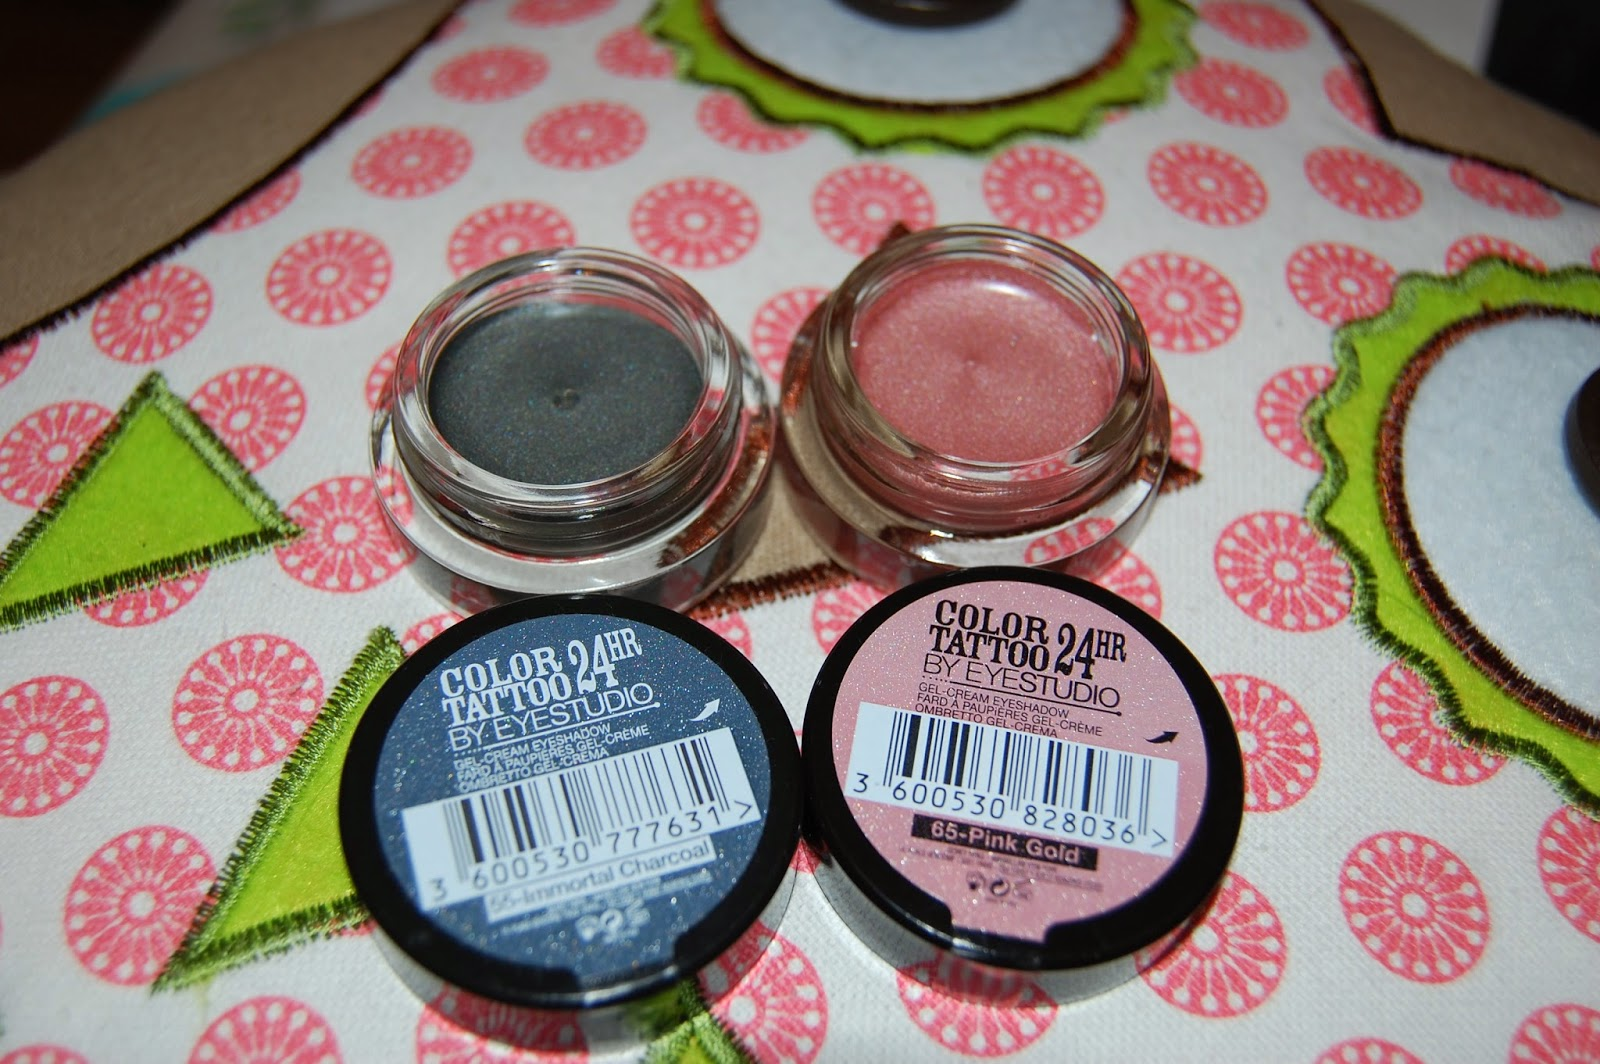 maybelline colour tattoo, eyeshadow, gel eyeshadow, pink, grey, metallics, make up, bbloggers, bblogger, beauty, maybelline